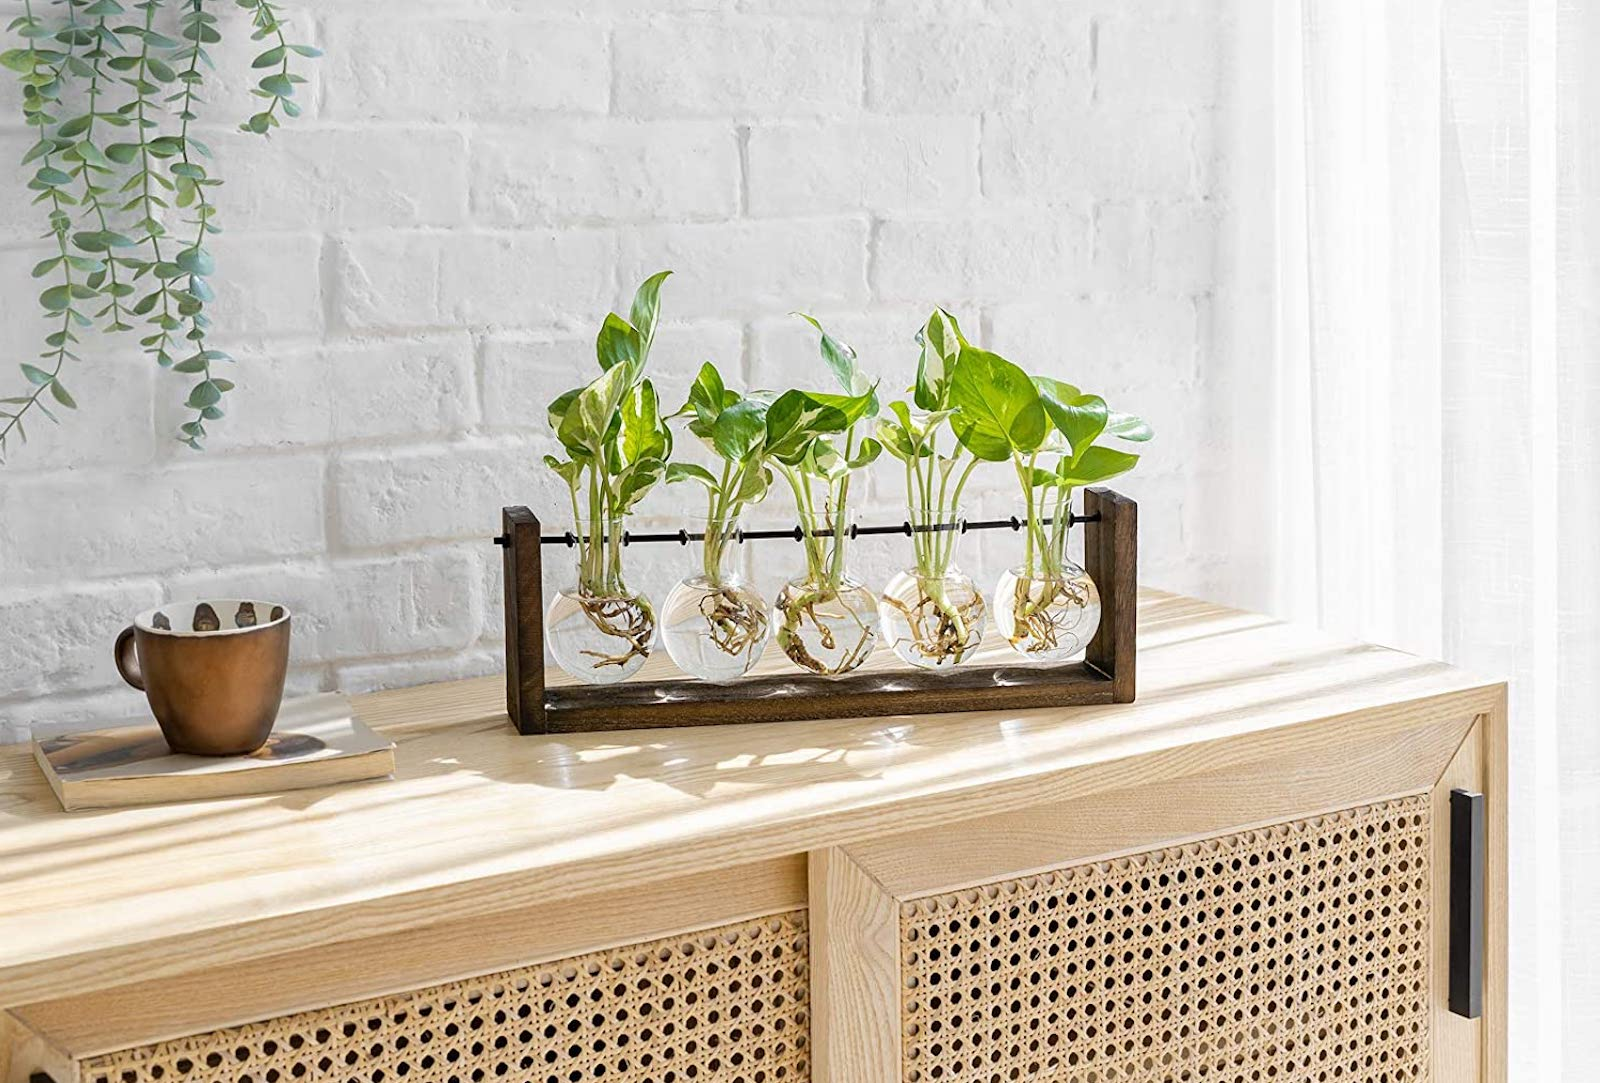 A five-bulb glass and wood planter sitting on a wood cabinet